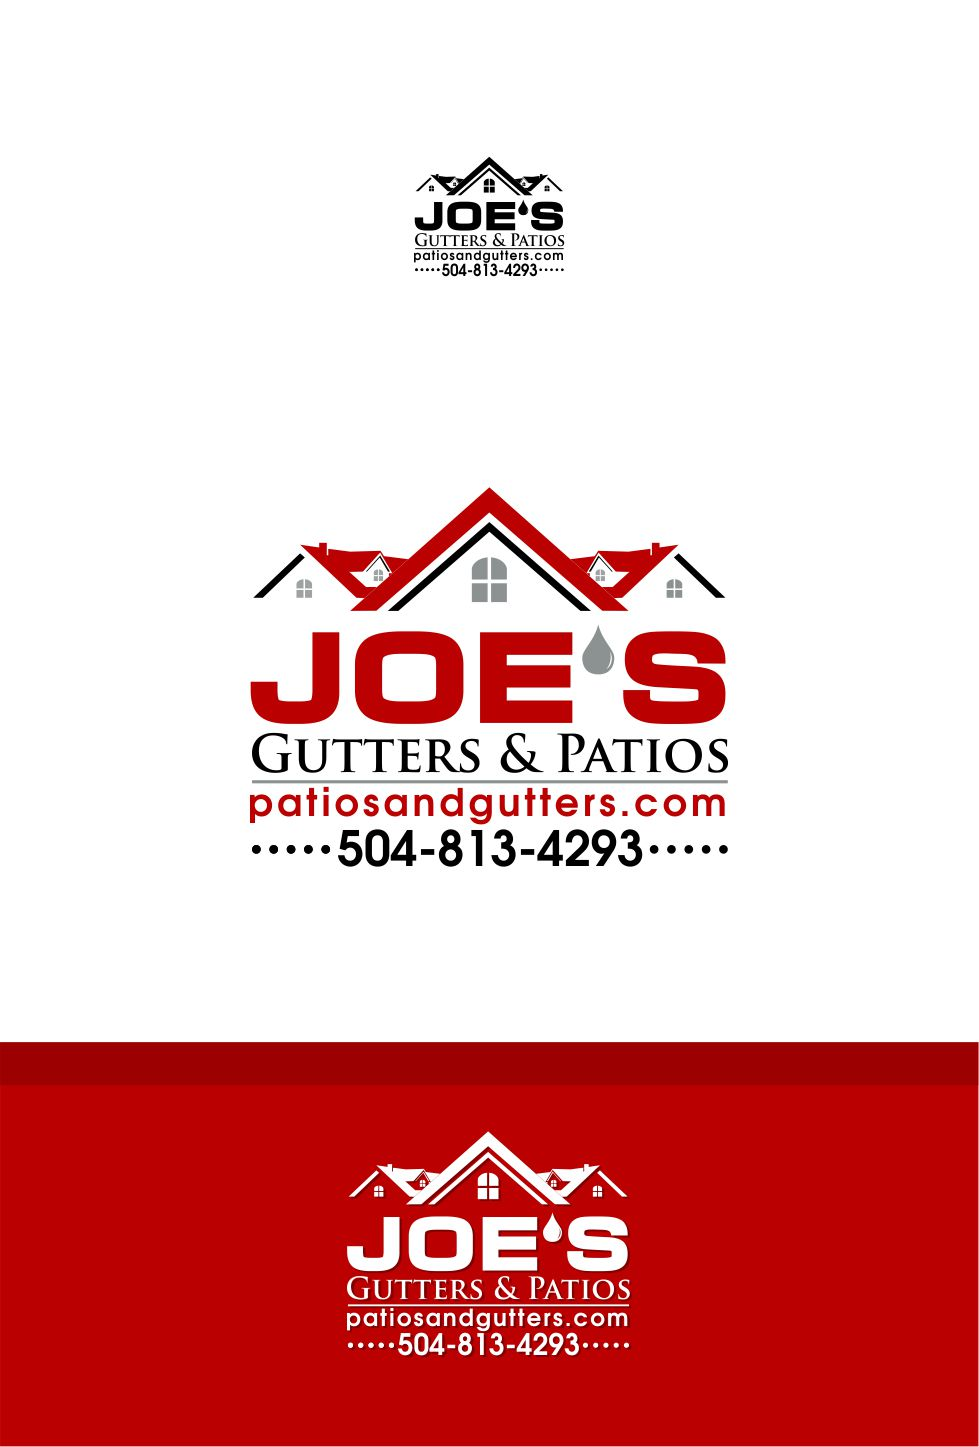 Logo Design by Raymond Garcia - Entry No. 20 in the Logo Design Contest Imaginative Logo Design for Joes Gutters & Patios.